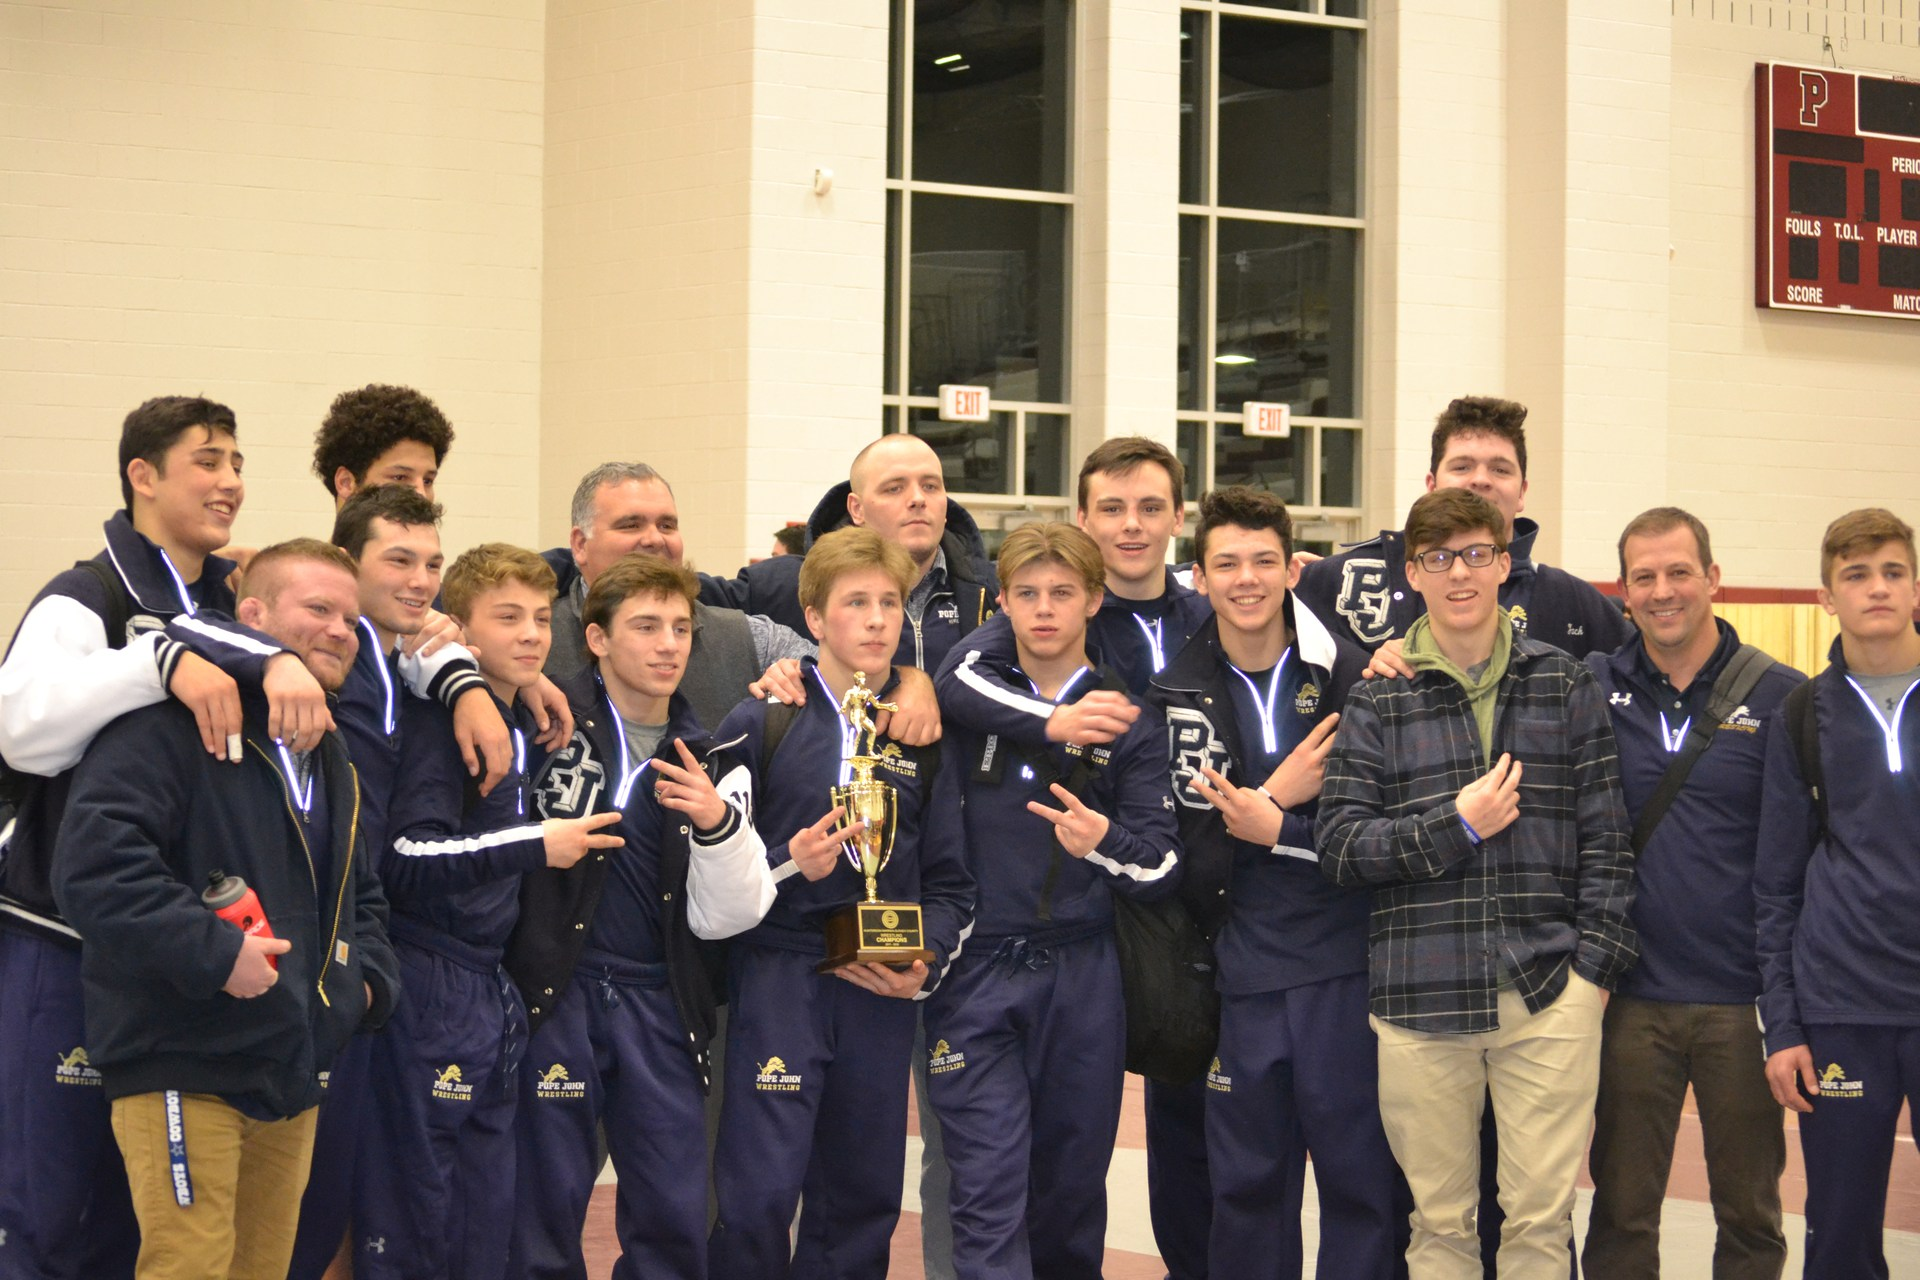 Wrestling team poses for picture